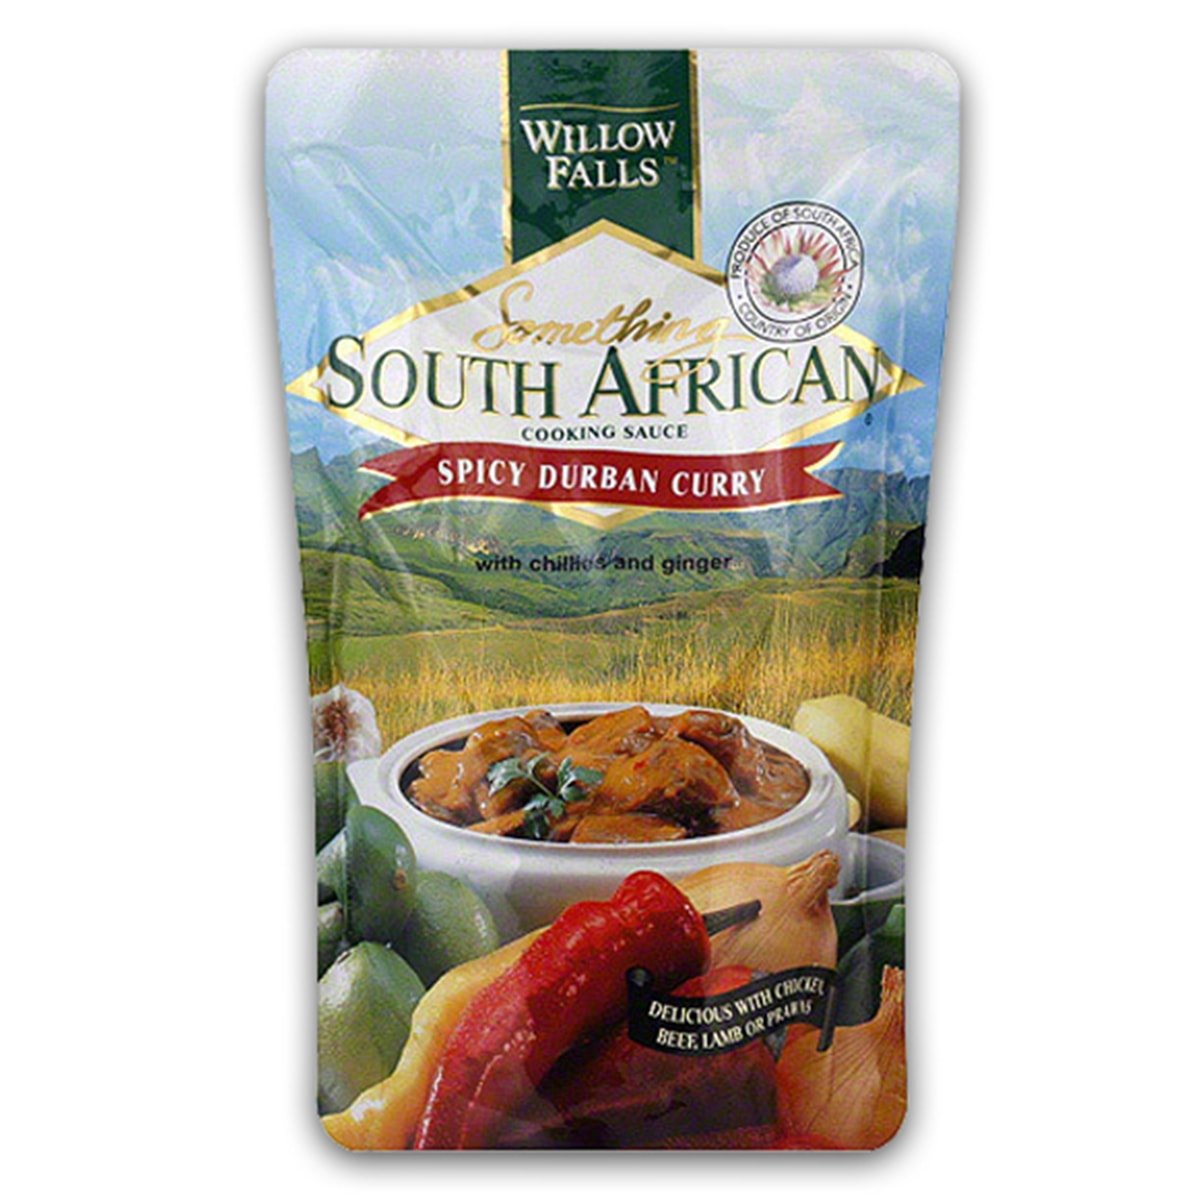 Buy Something South African Spicy Durban Curry Cooking Sauce - 400 gm